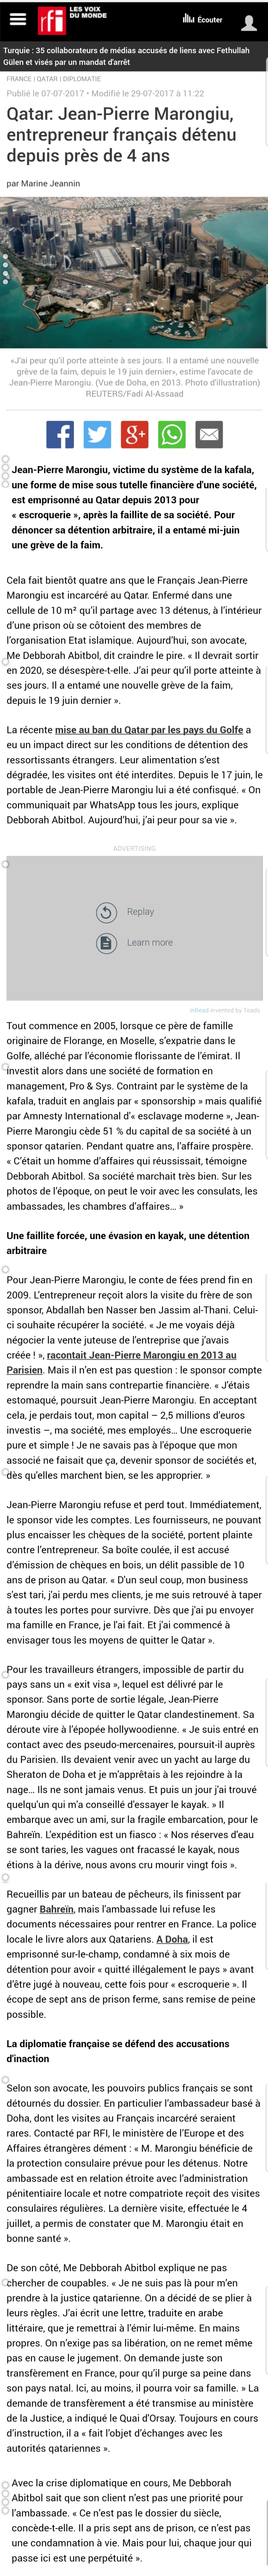 RFI Affaire MARONGIU